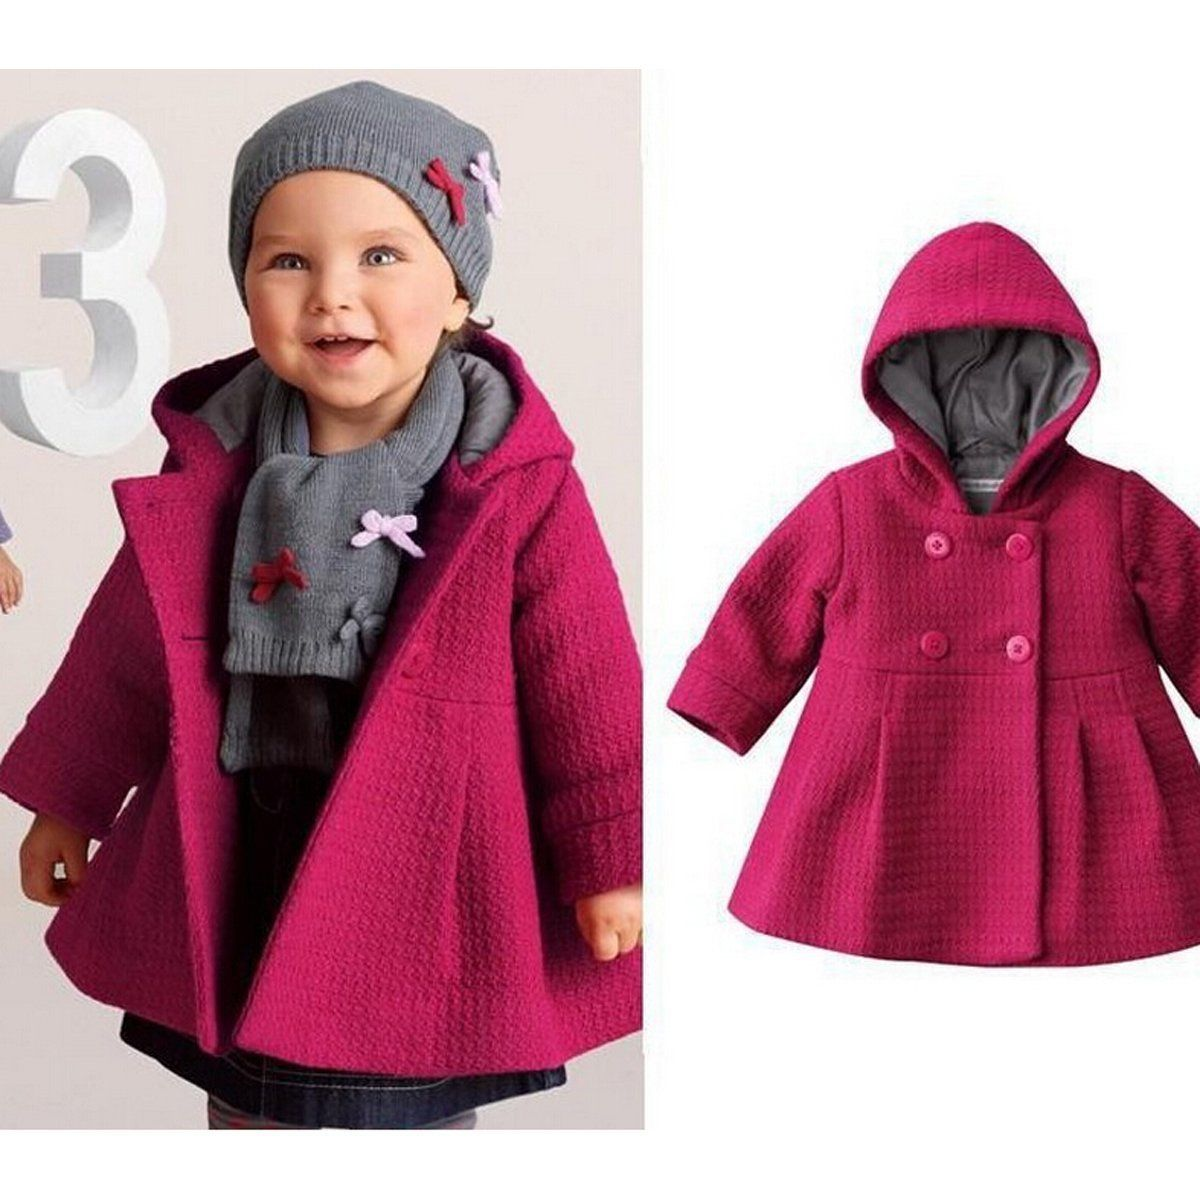 e9f015bc4  13.99 - Toddler Kids Baby Girls Winter Warm Trench Coat Hooded ...